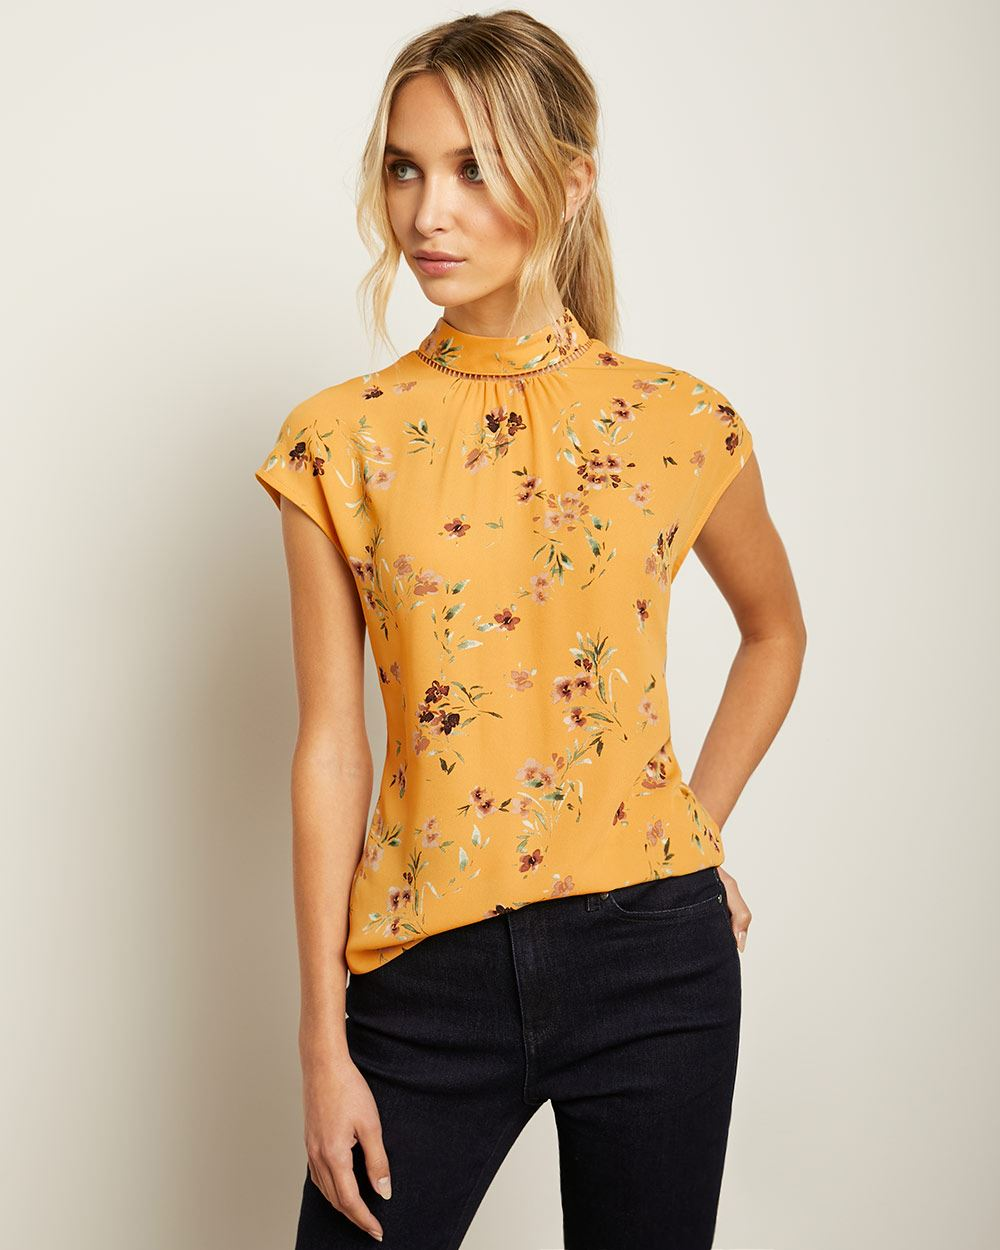 Short Sleeve Mixed Media T-shirt with Embroidered Mock-Neck